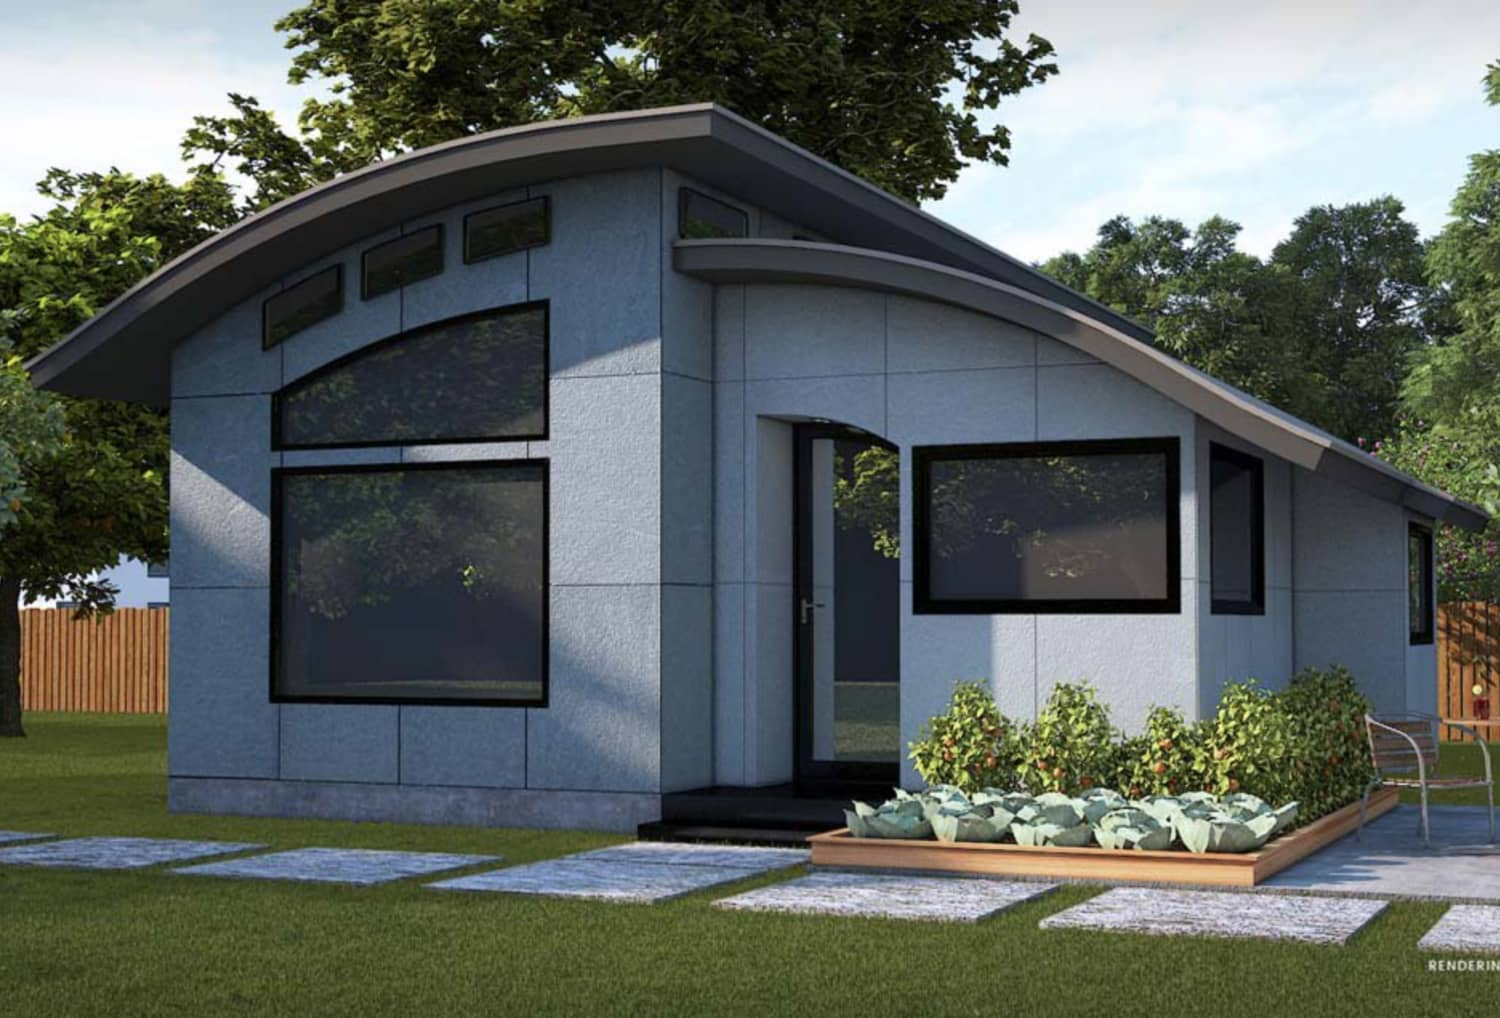 This Prefab Home Is For People Who Think Tiny Houses are Too Tiny